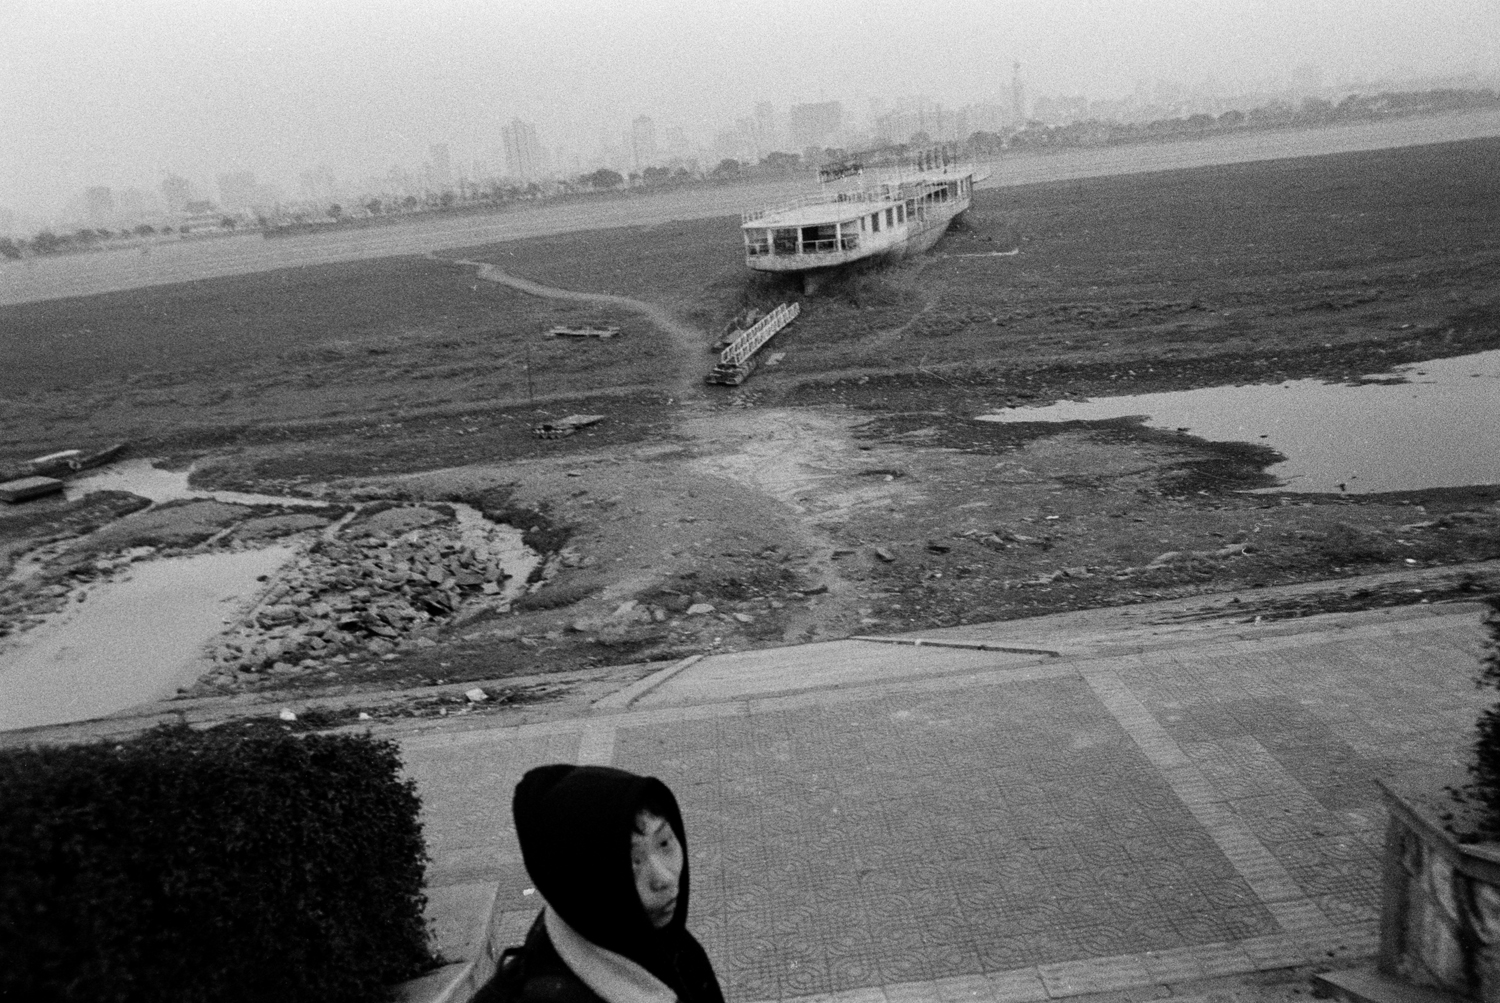 Grounded ship on the banks of the Xiang River. 2008.